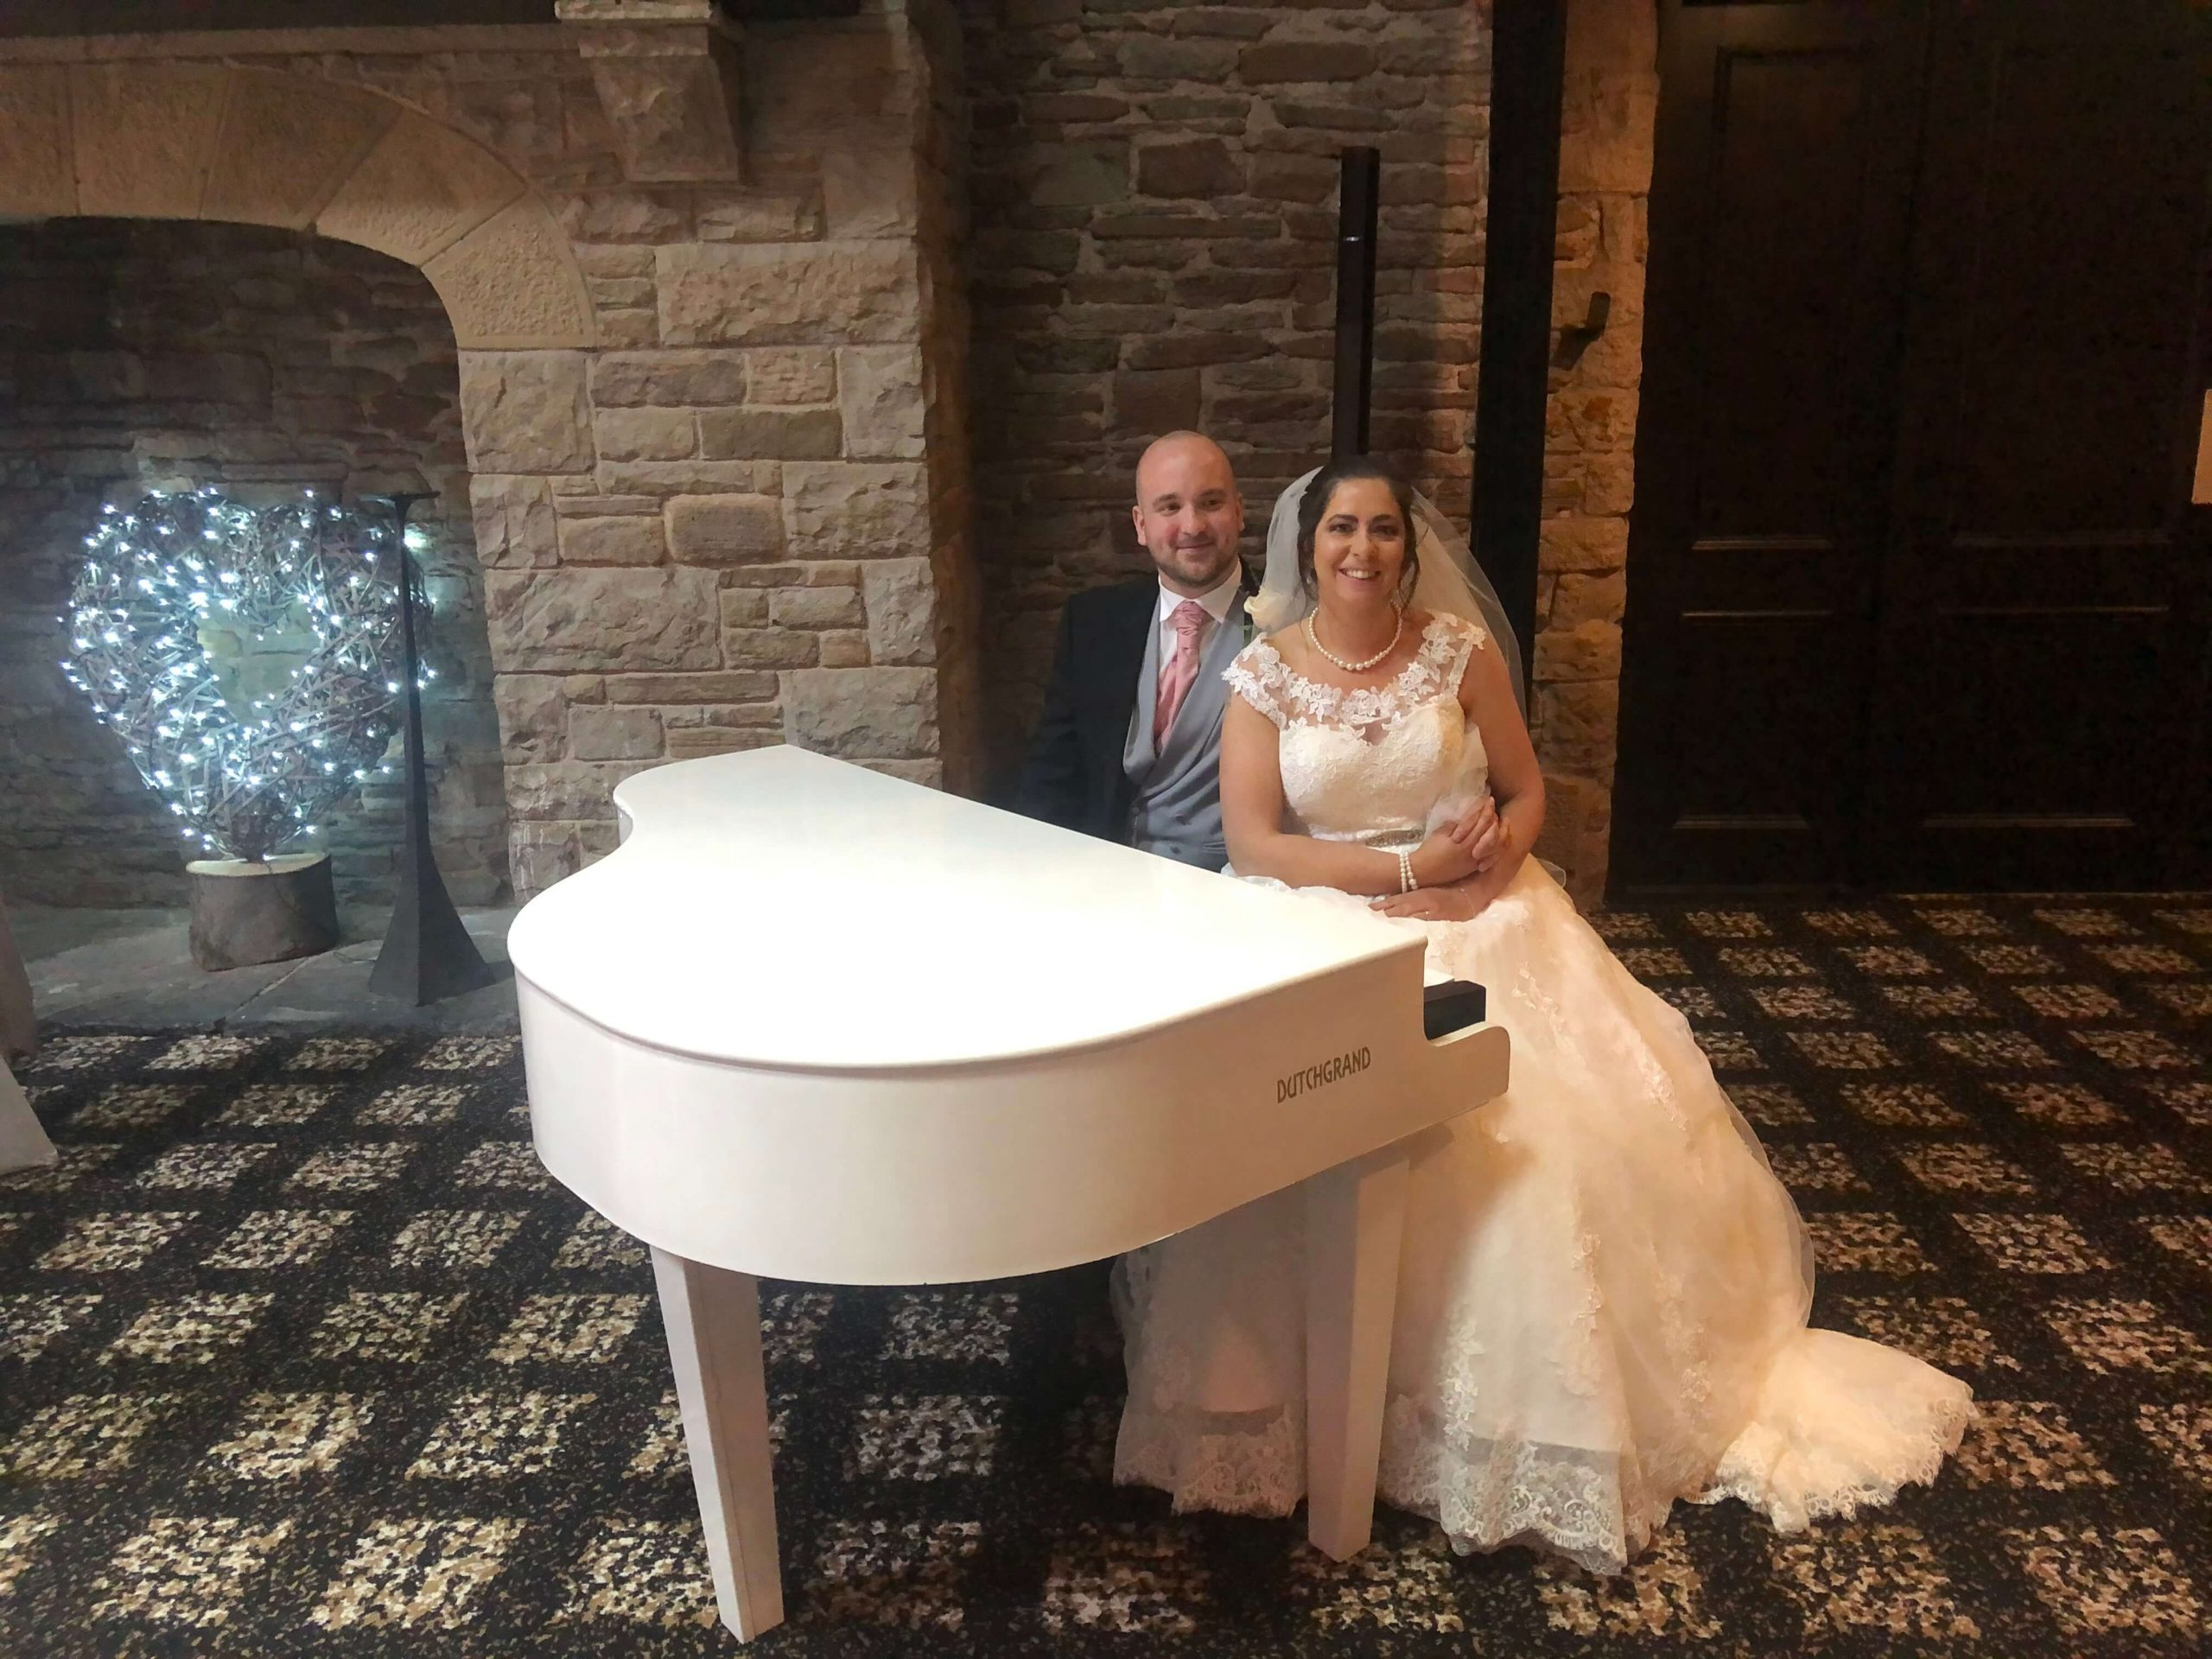 Liz Hendry played for the wedding of Mr and Mrs Gibson at Lancashire Manor